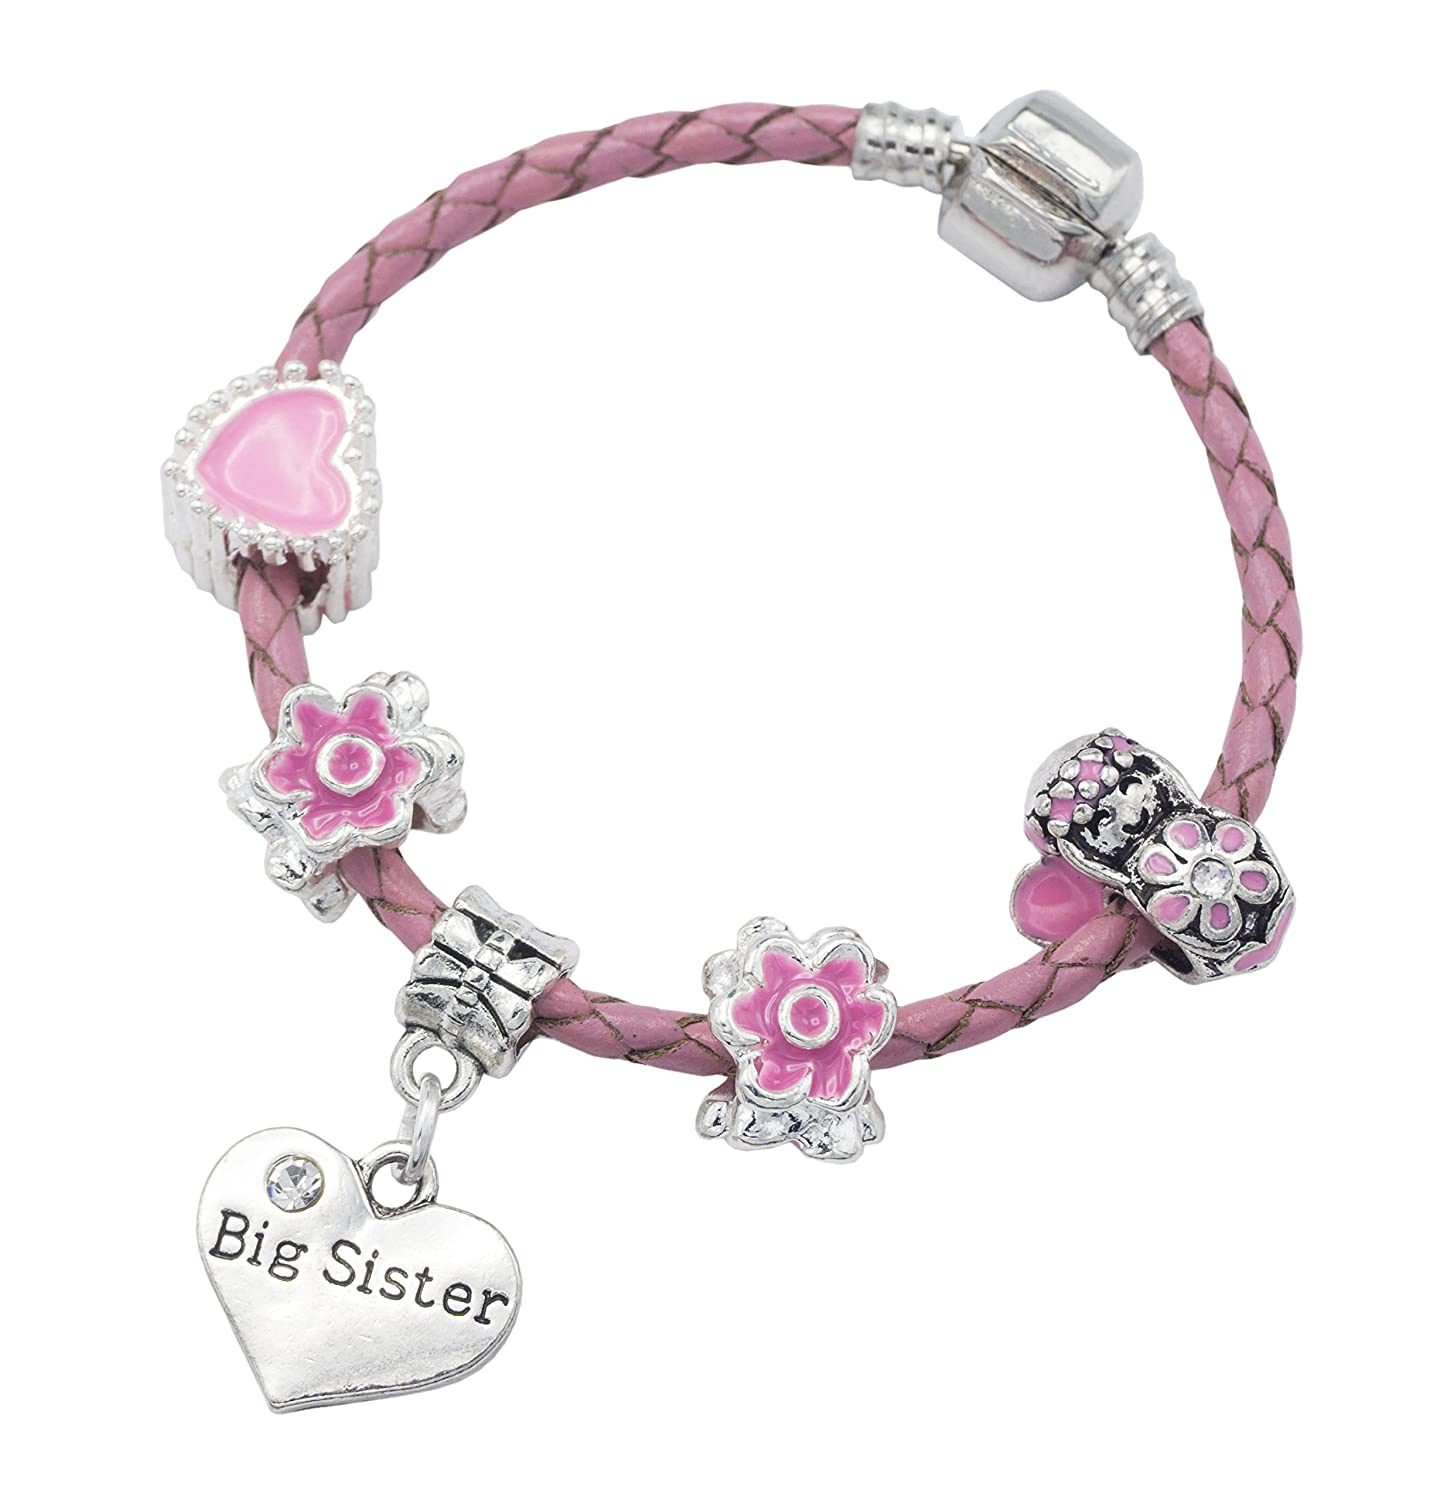 'Big Sister' Pink Leather Charm Bracelet for Girls Presented in High Quality Gift Pouch Jewellery Hut BRPNKLTBIGSISTER